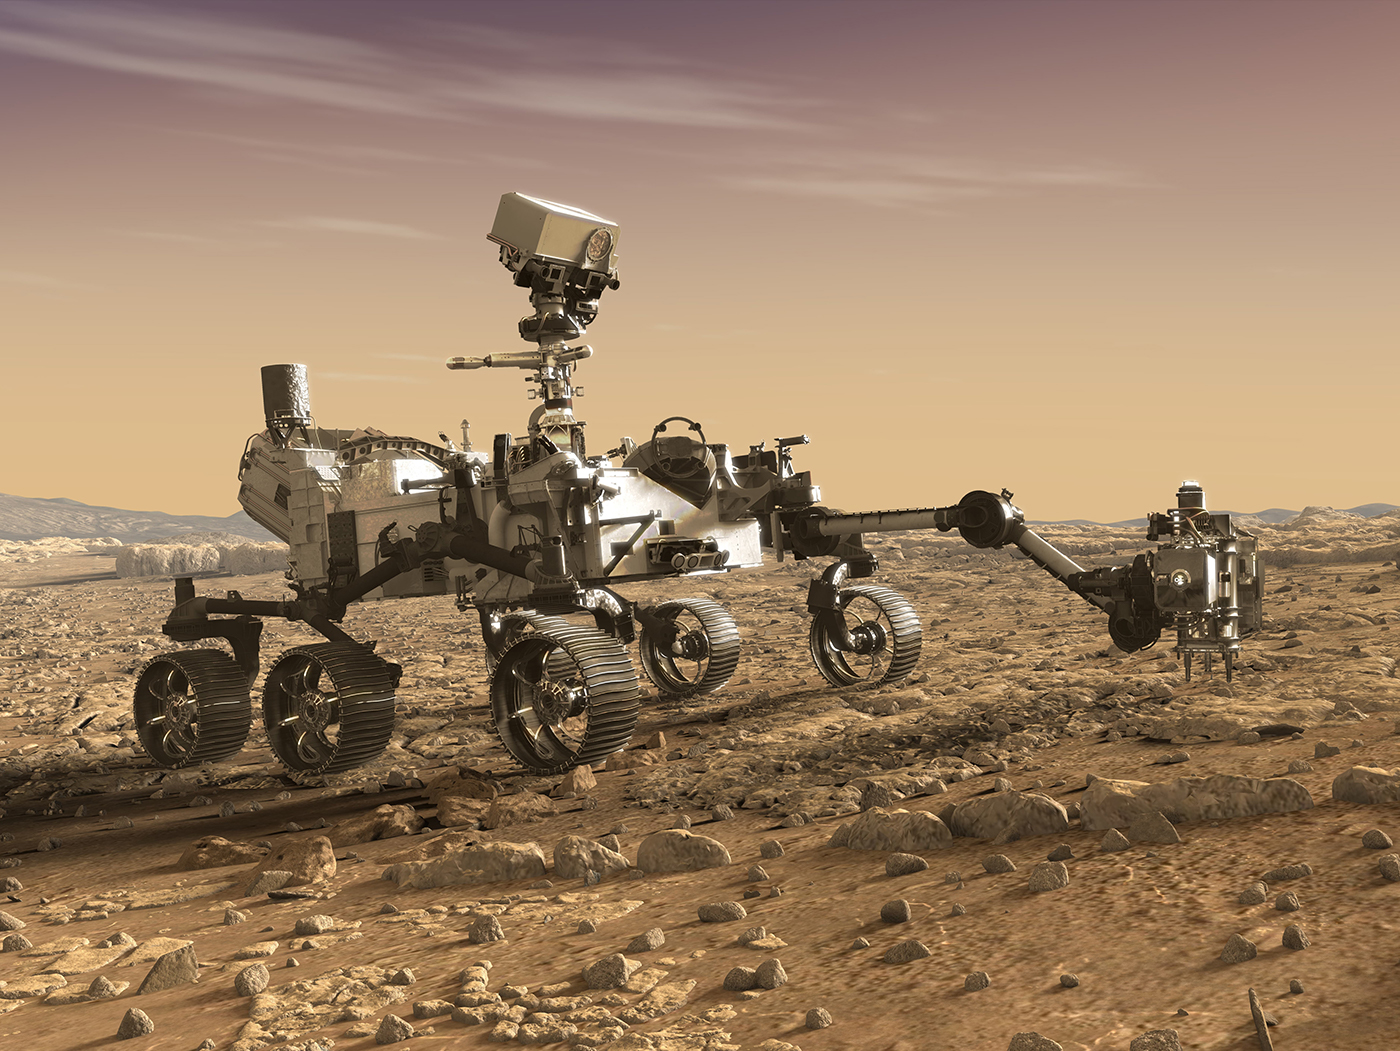 DPA Microphones mars rover 2020